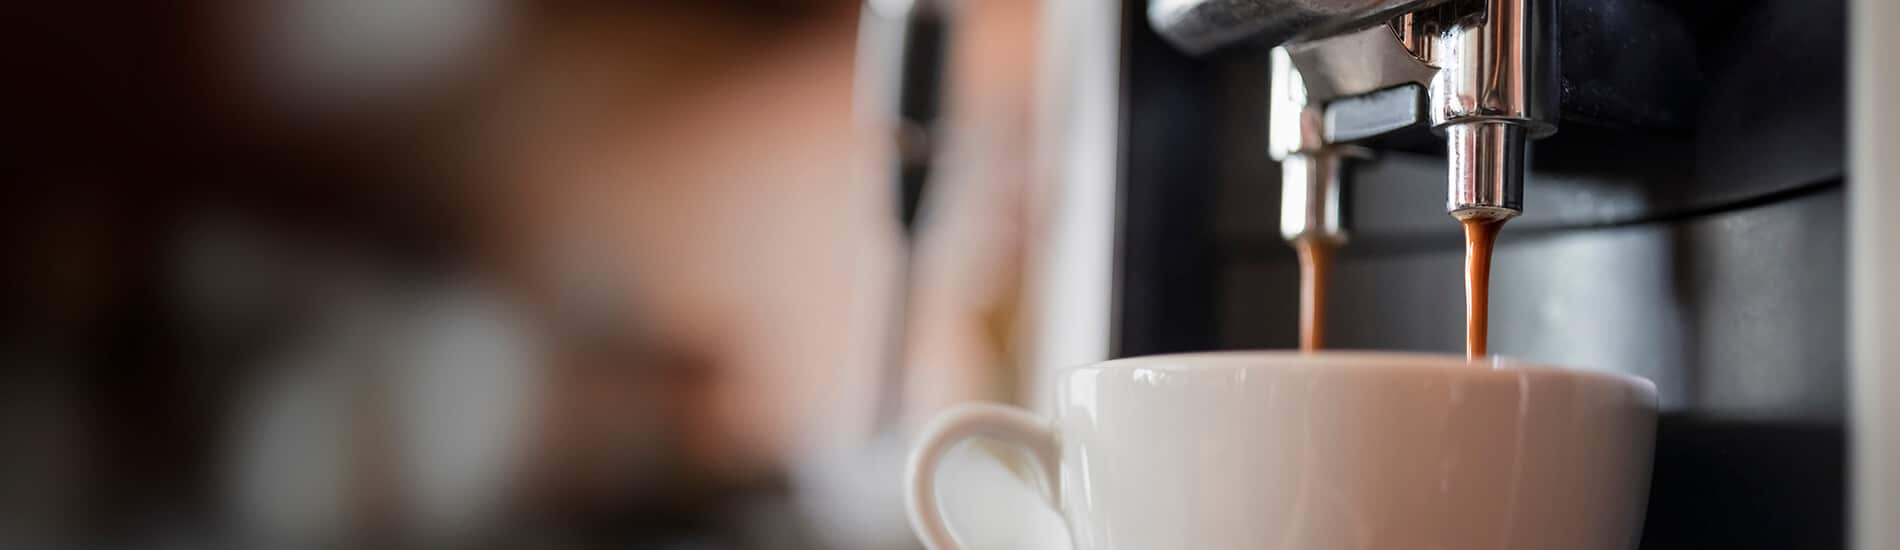 Commercial coffee machines for offices